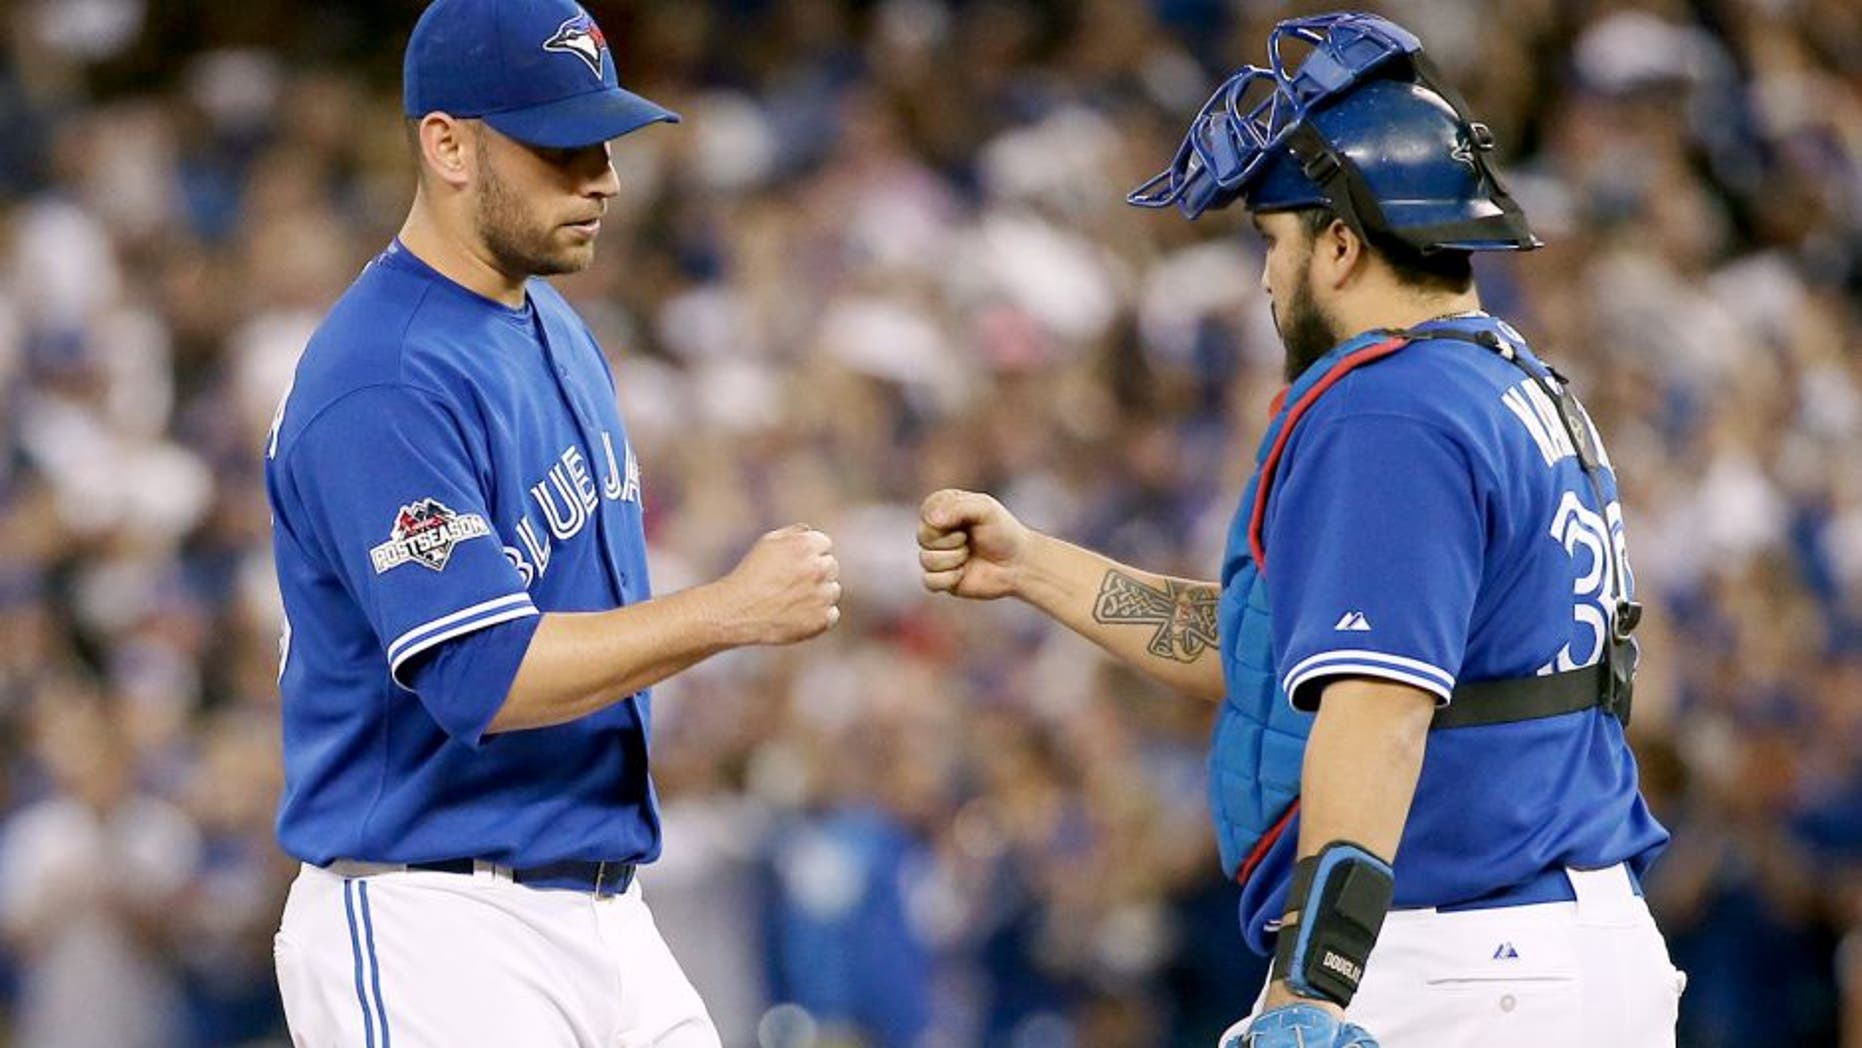 TORONTO, ON - OCTOBER 21: Toronto Blue Jays starting pitcher Marco Estrada (25) (left) gets a fist bump from catcher Dioner Navarro just before he's pulled from the game in the 7th inning. Toronto Blue Jays V Kansas City Royals in Game 5 of the American League Championship Series in MLB action at Rogers Centre. Jays win 7-1 and head back to KC for Game 6 trailing in the series 3-2. Toronto Star/Rick Madonik (Rick Madonik/Toronto Star via Getty Images)